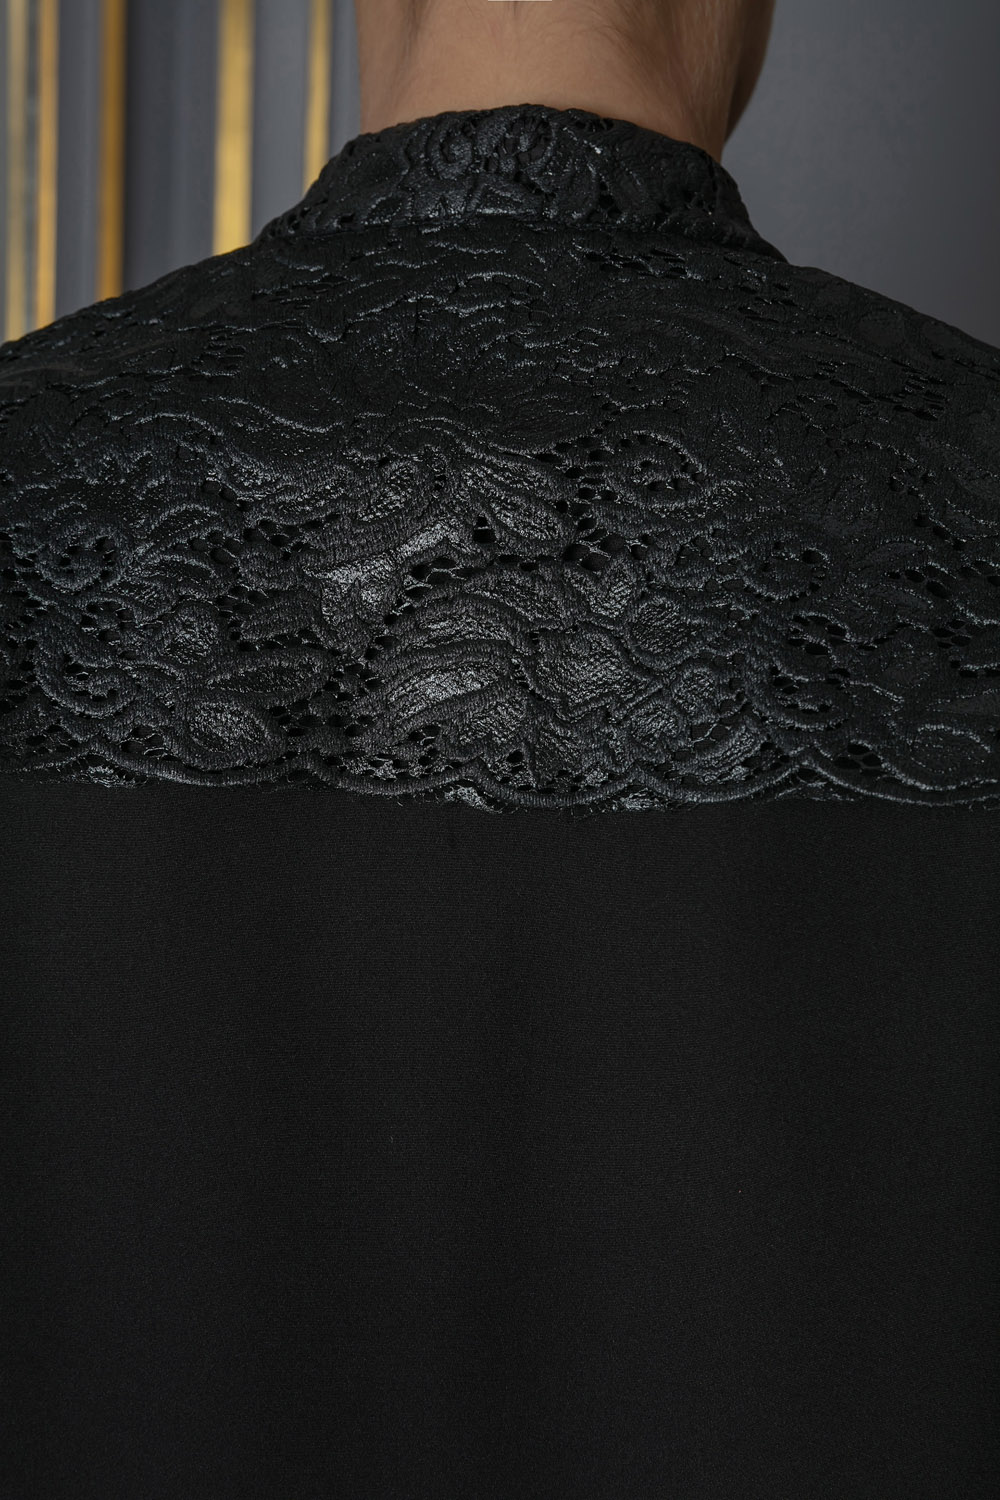 Black shirt with lace detailing